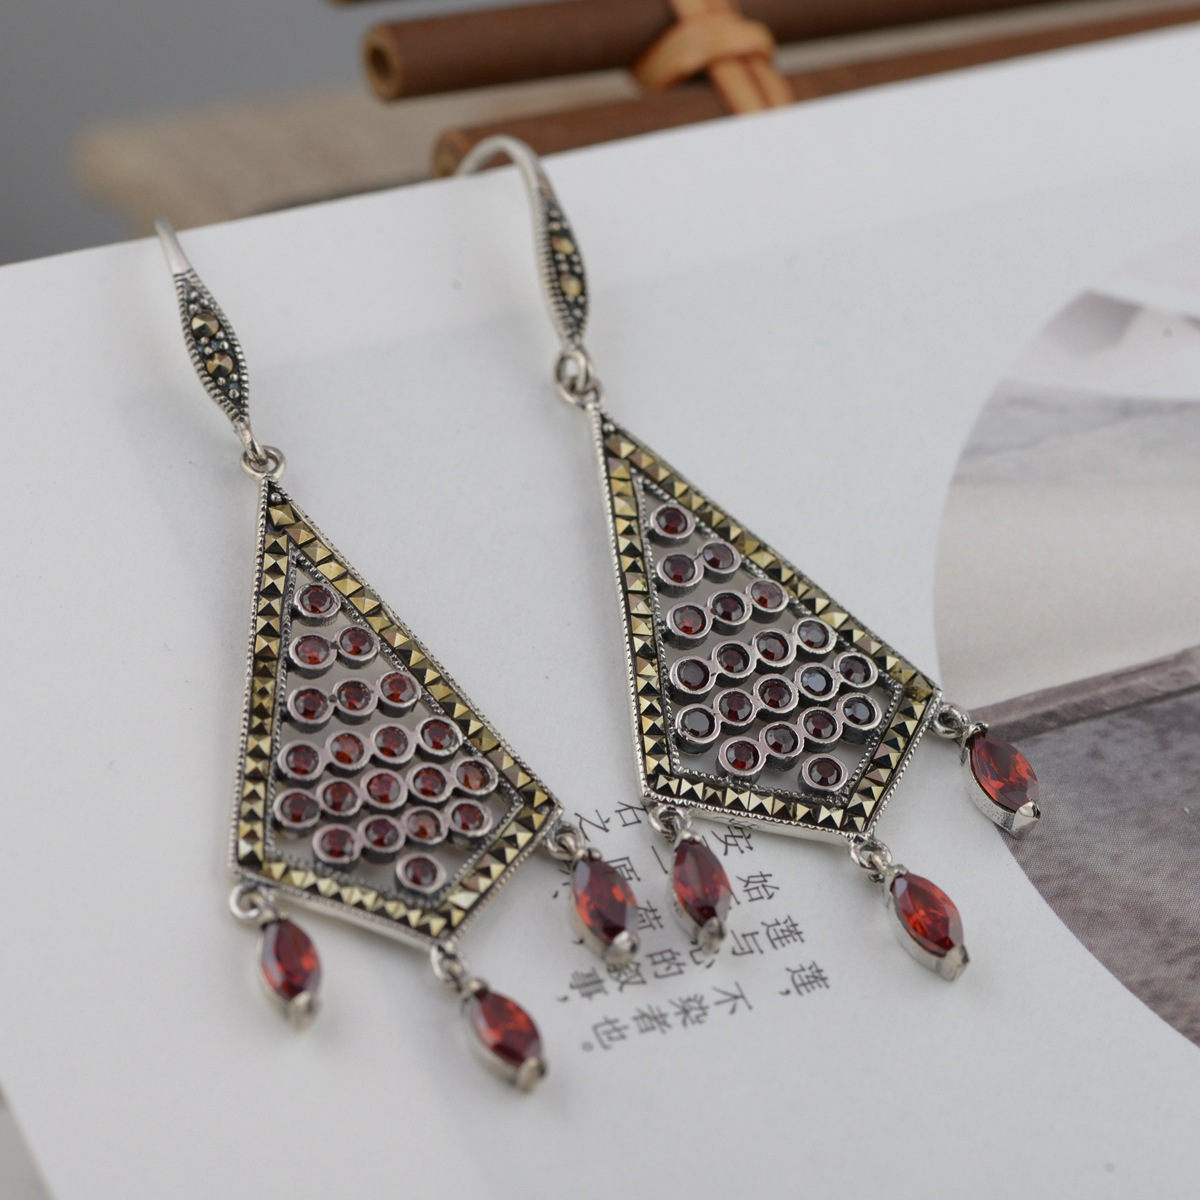 The New Fashion Wholesale Jewelry Real S925 Pure Silver Earrings Archaize Process Exquisite Tassels Eardrop The New Gift 2018 new jewelry real pearl earrings s925 pure silver wholesale archaize process female present new products